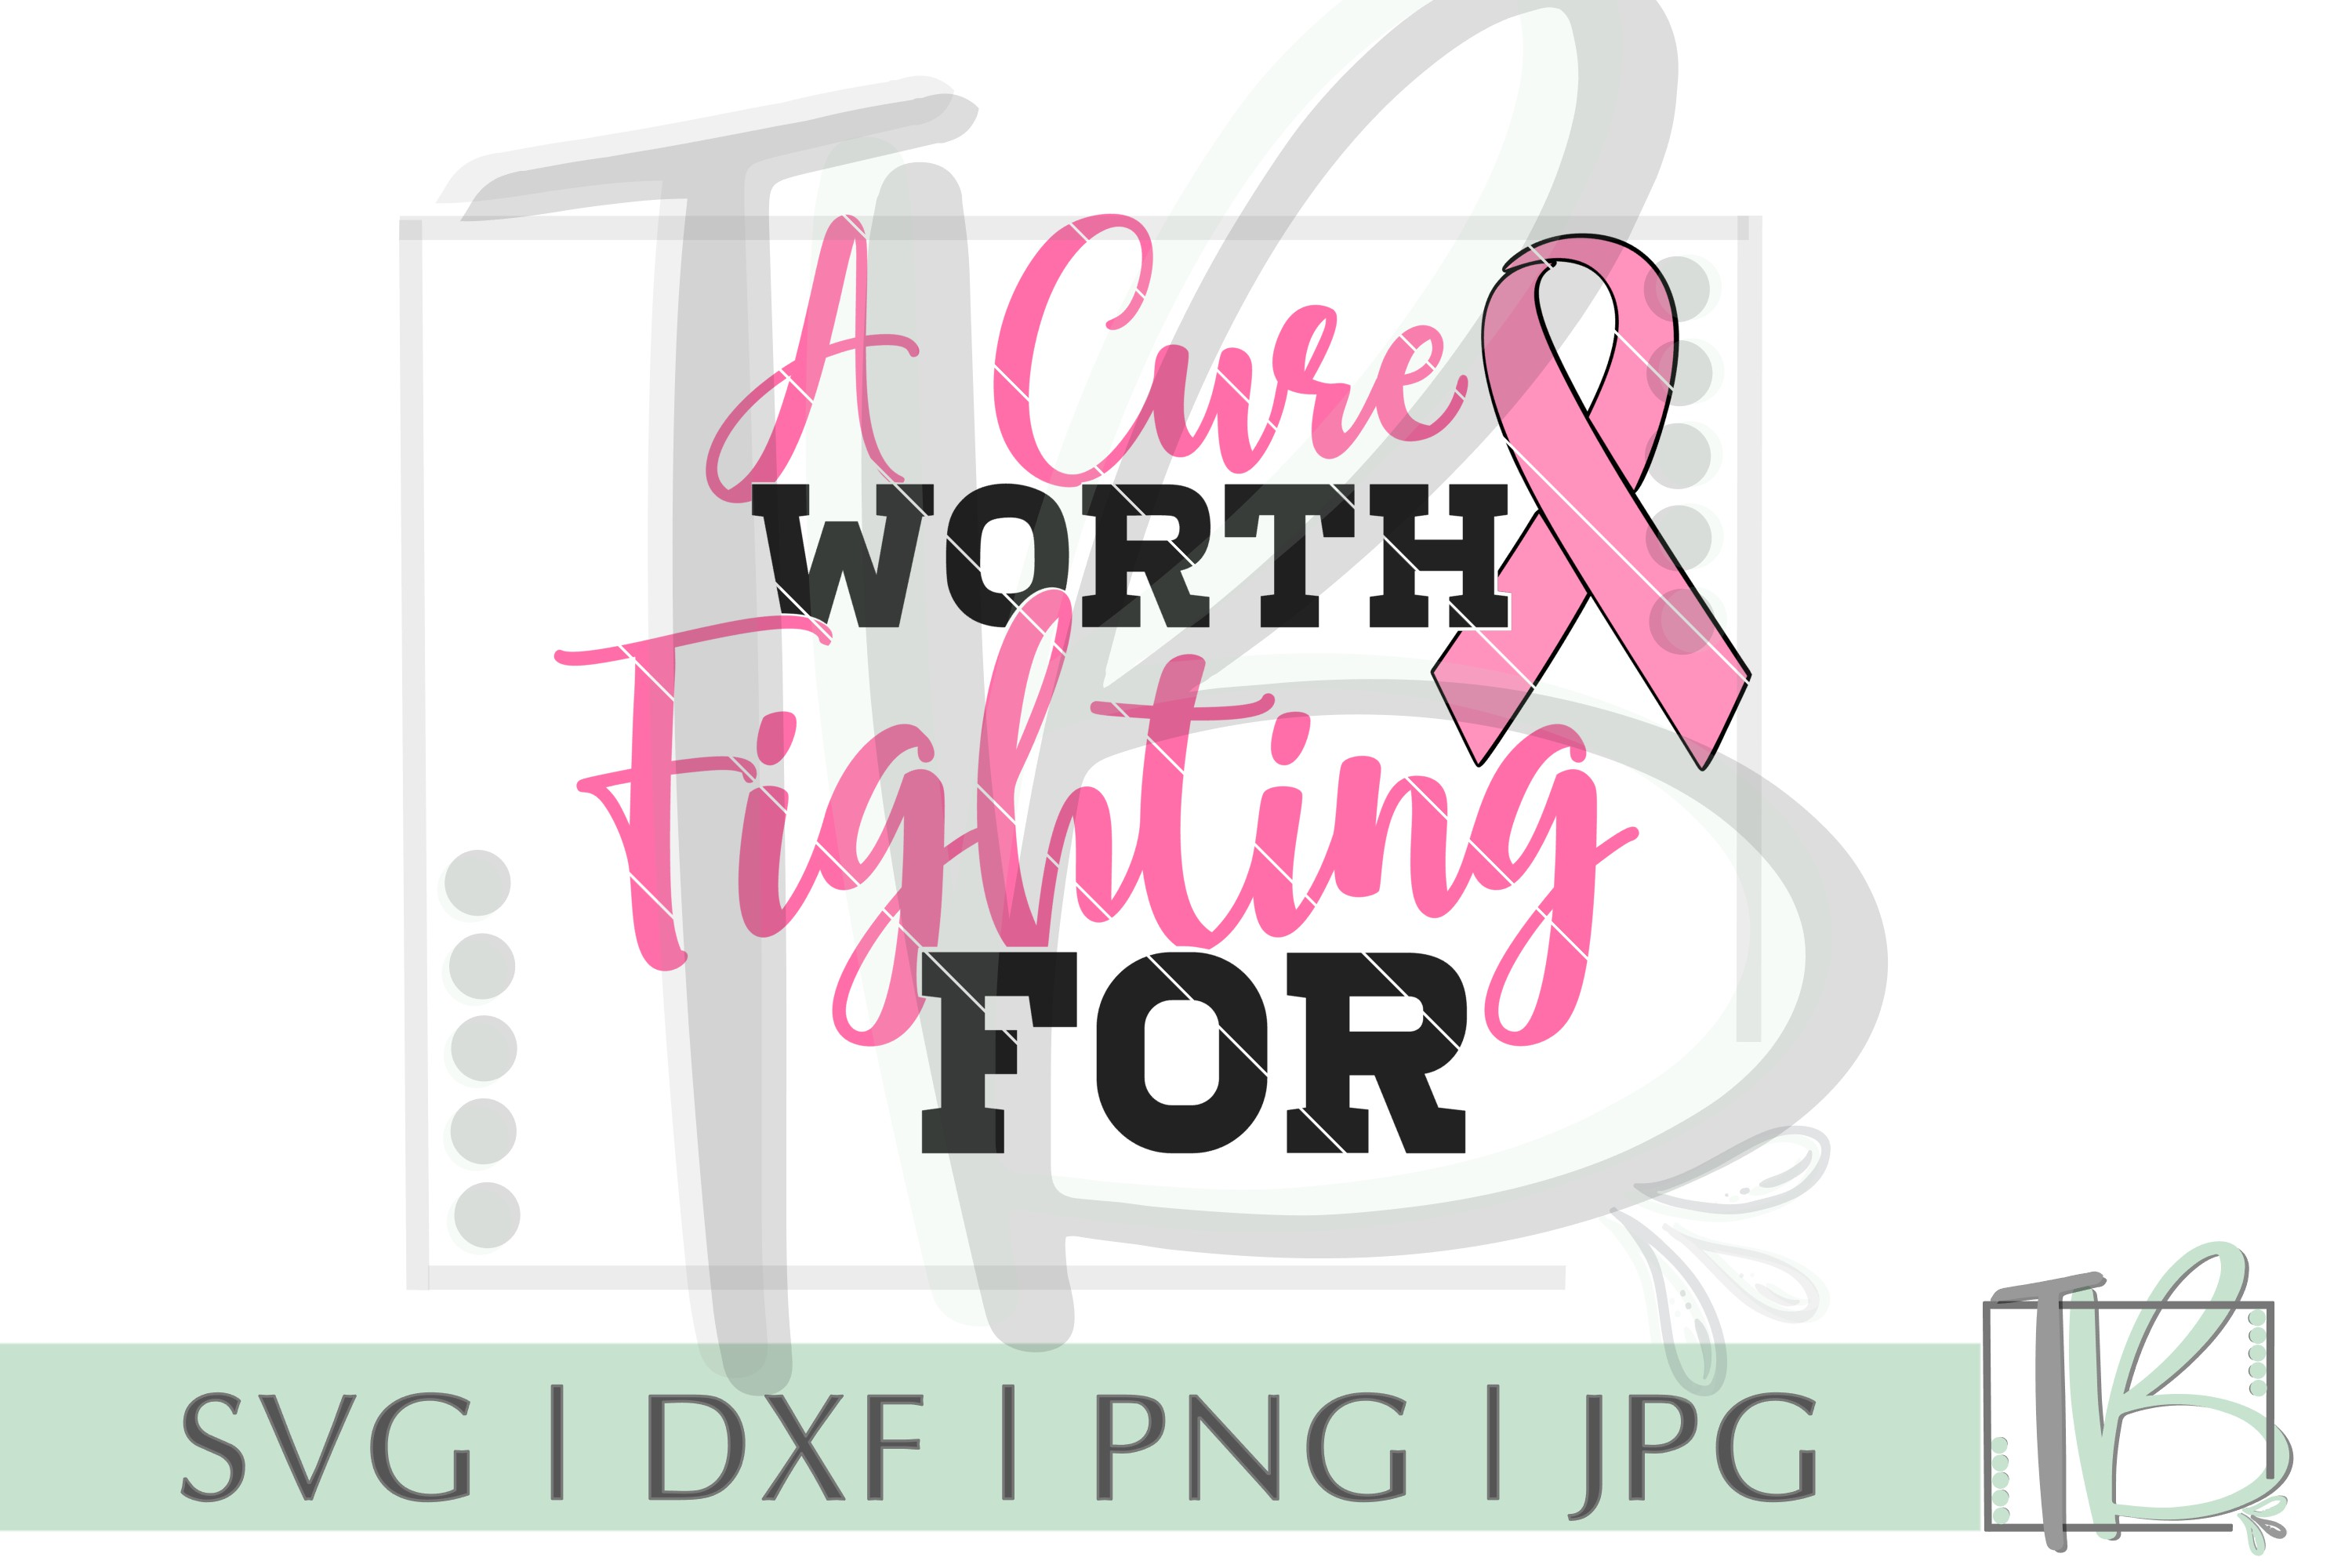 Breast Cancer SVG, A Cure Worth Fighting For SVG example image 2